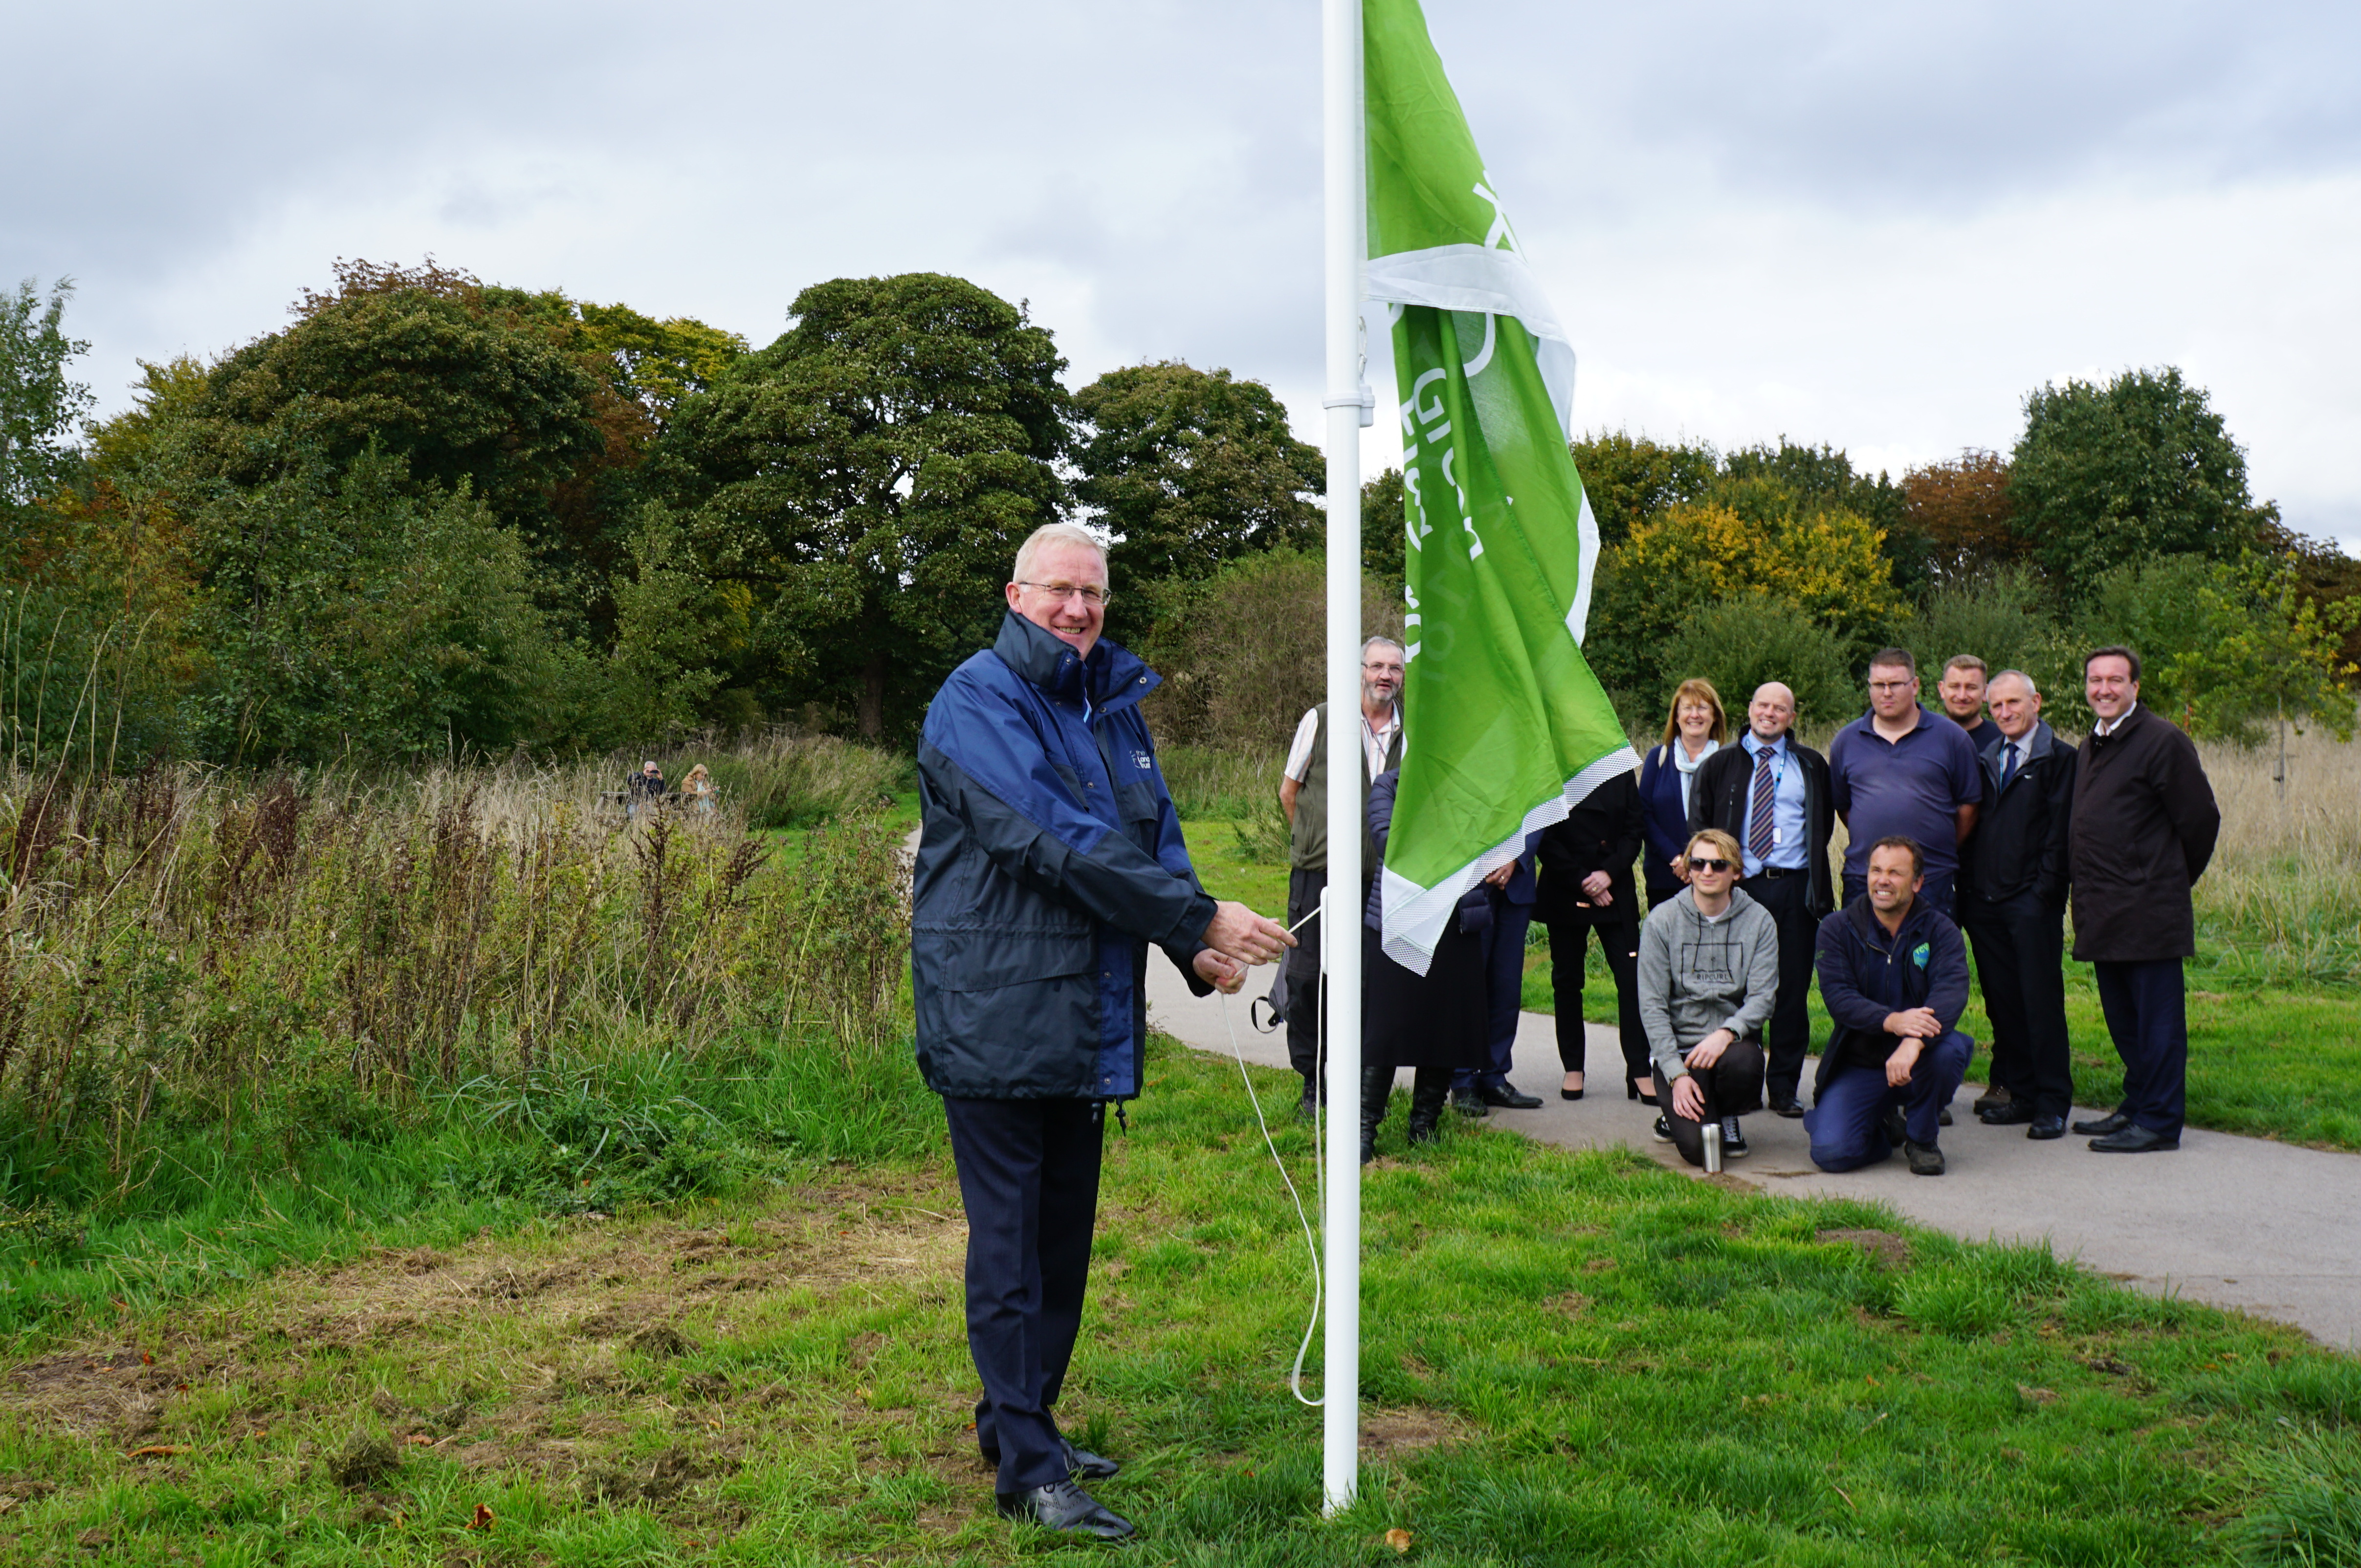 Green Flag raised at Countess of Chester Country Park